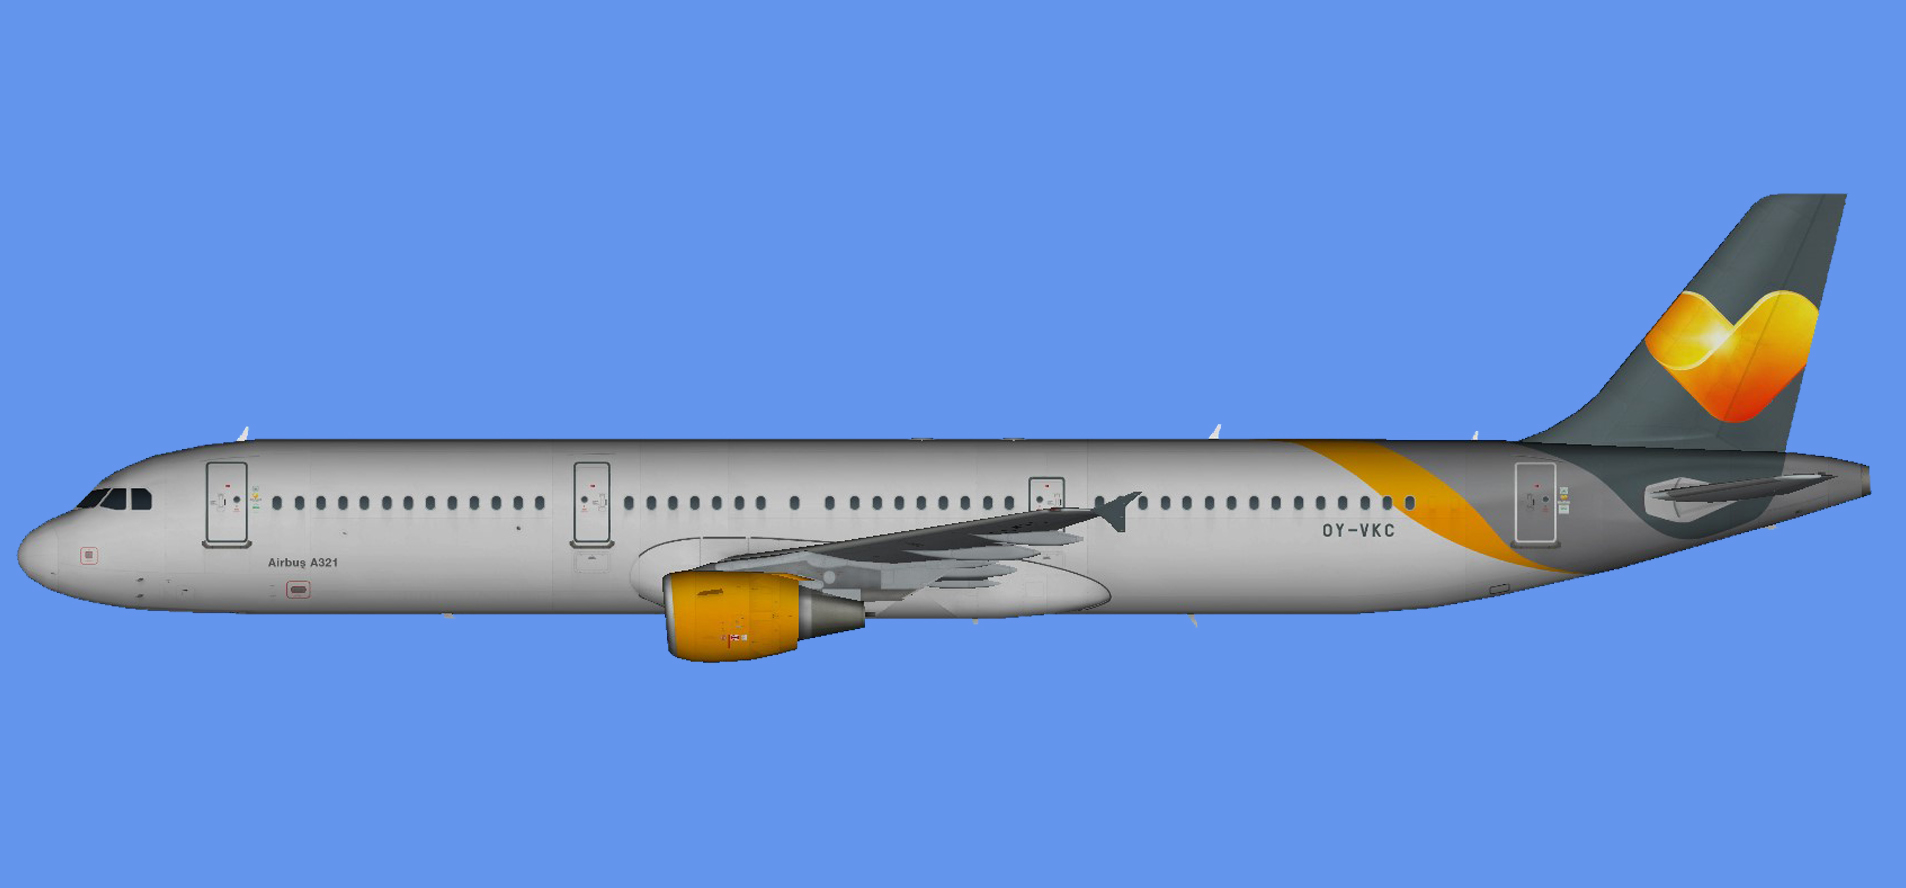 Sunclass Airlines Airbus A321